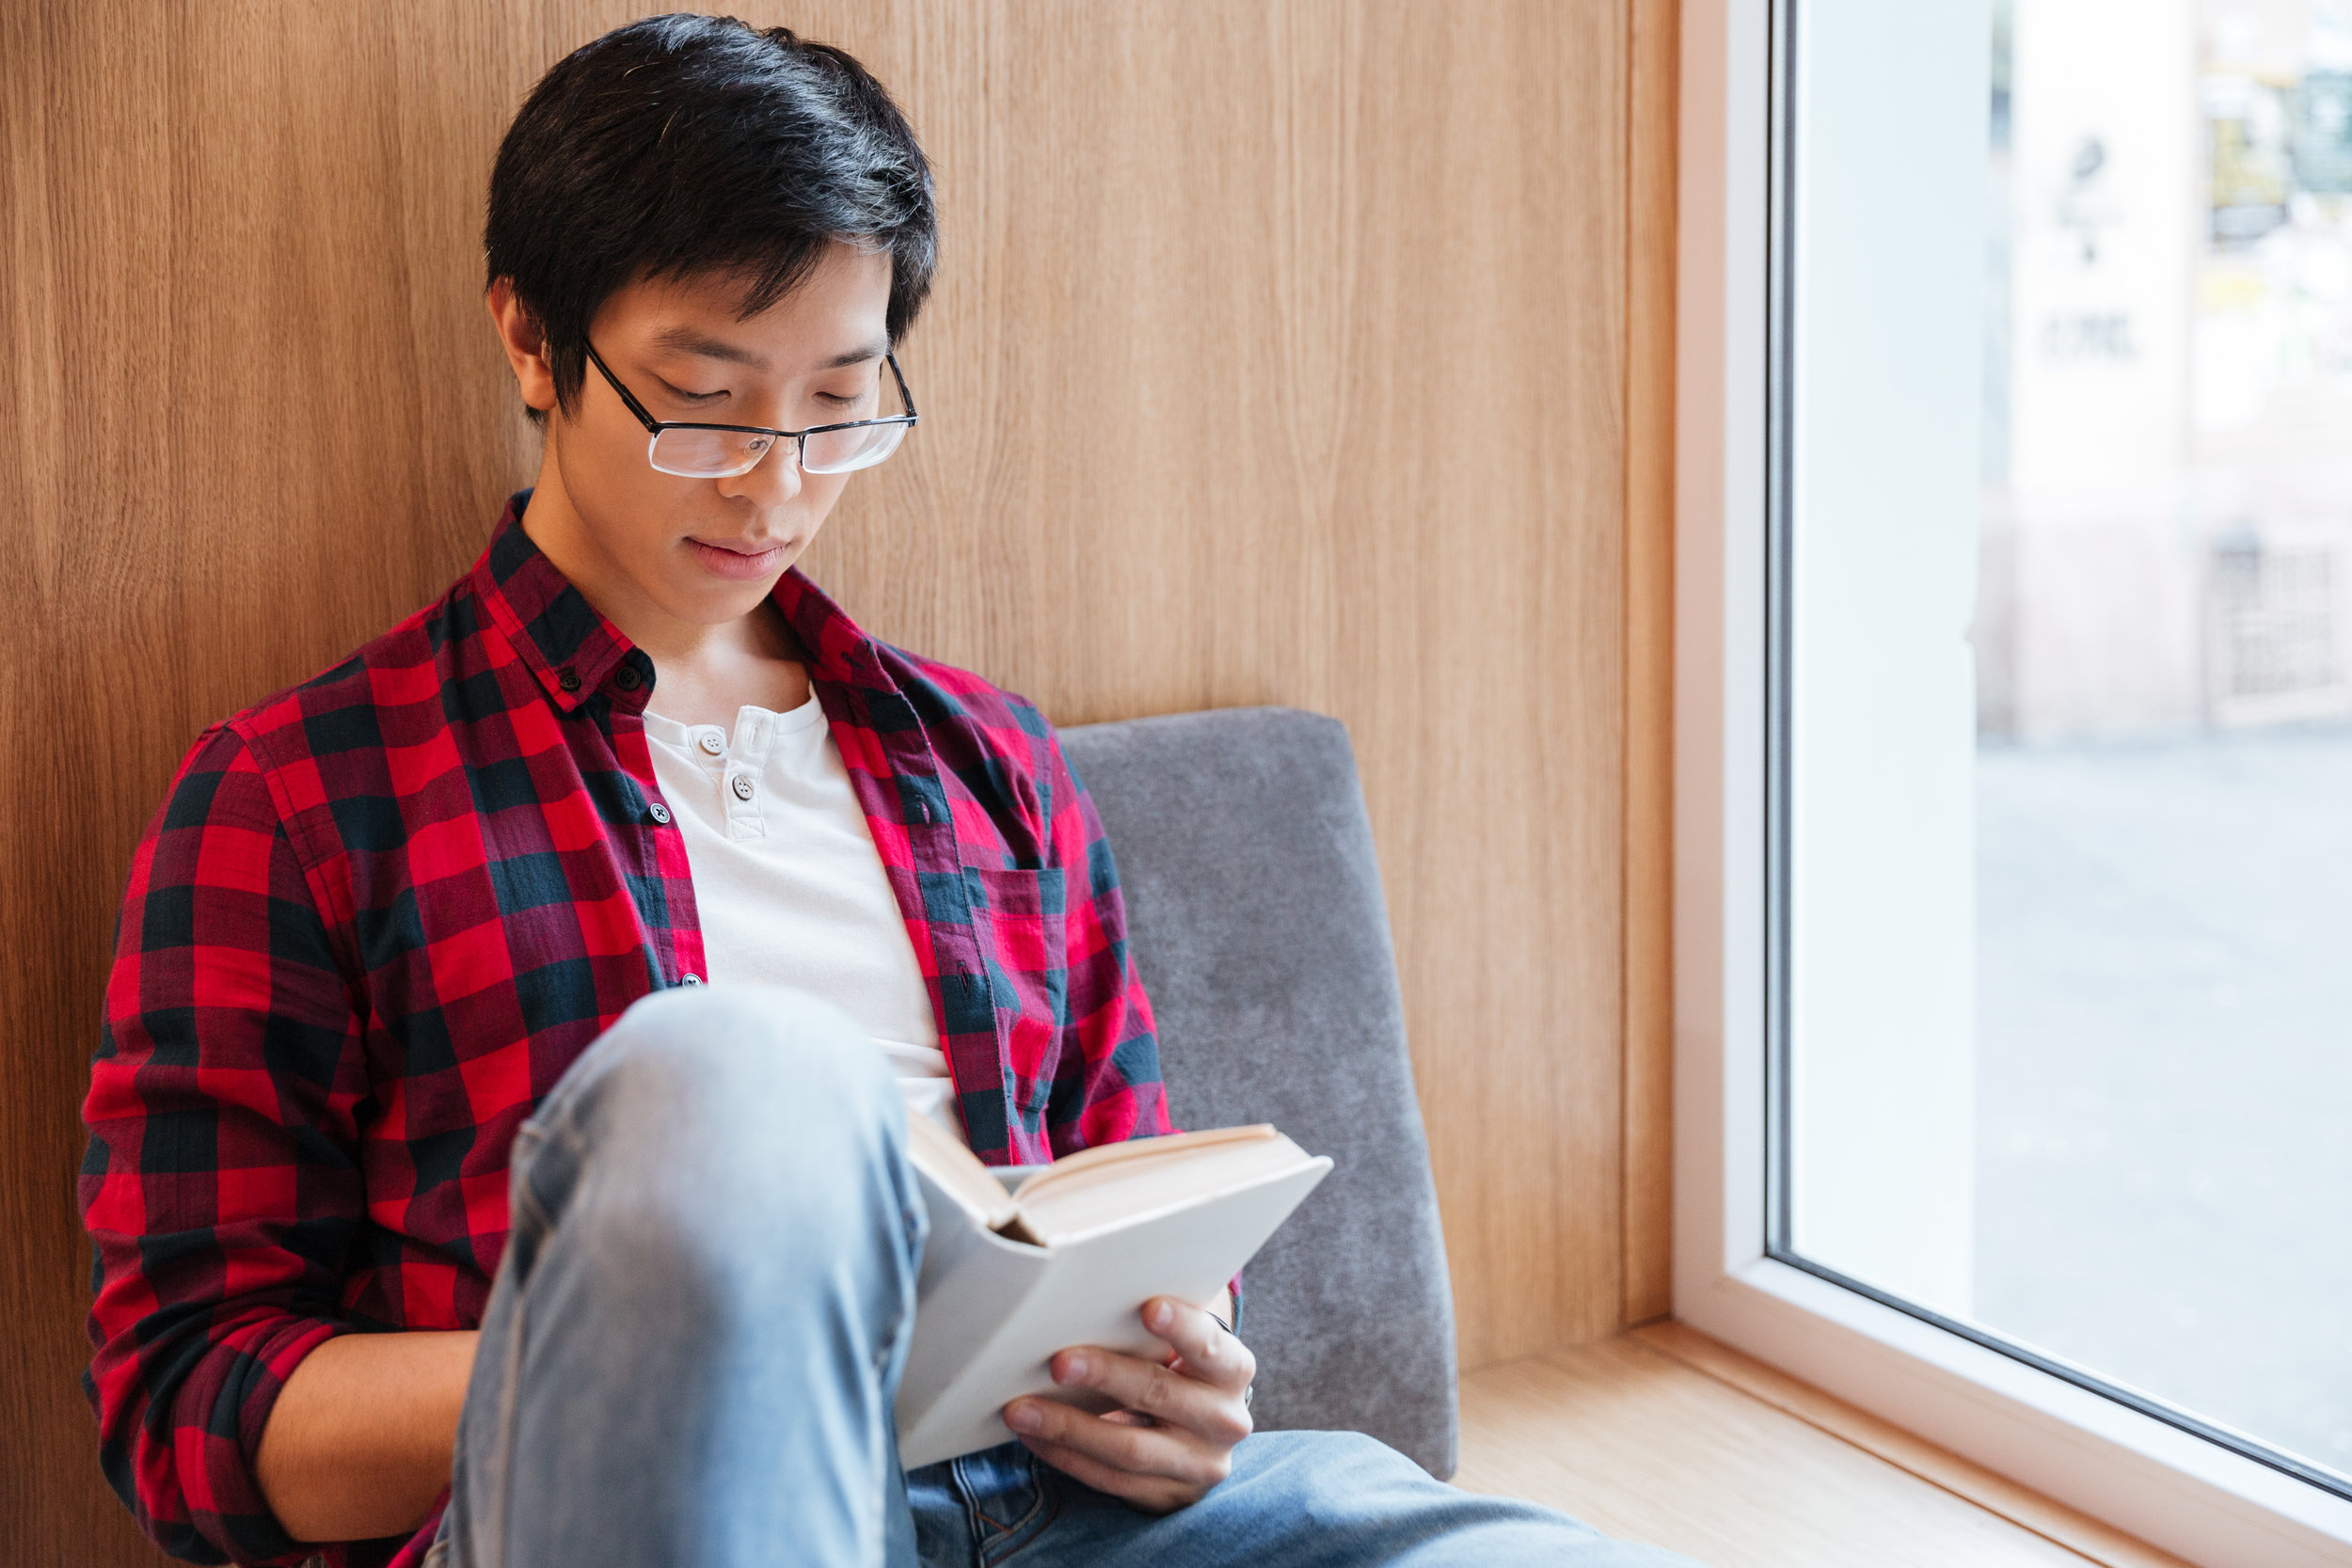 graphicstock-photo-of-cheerful-asian-student-reading-a-book-in-university-library-sitting-on-sofa_B_eS23O8hx.jpg